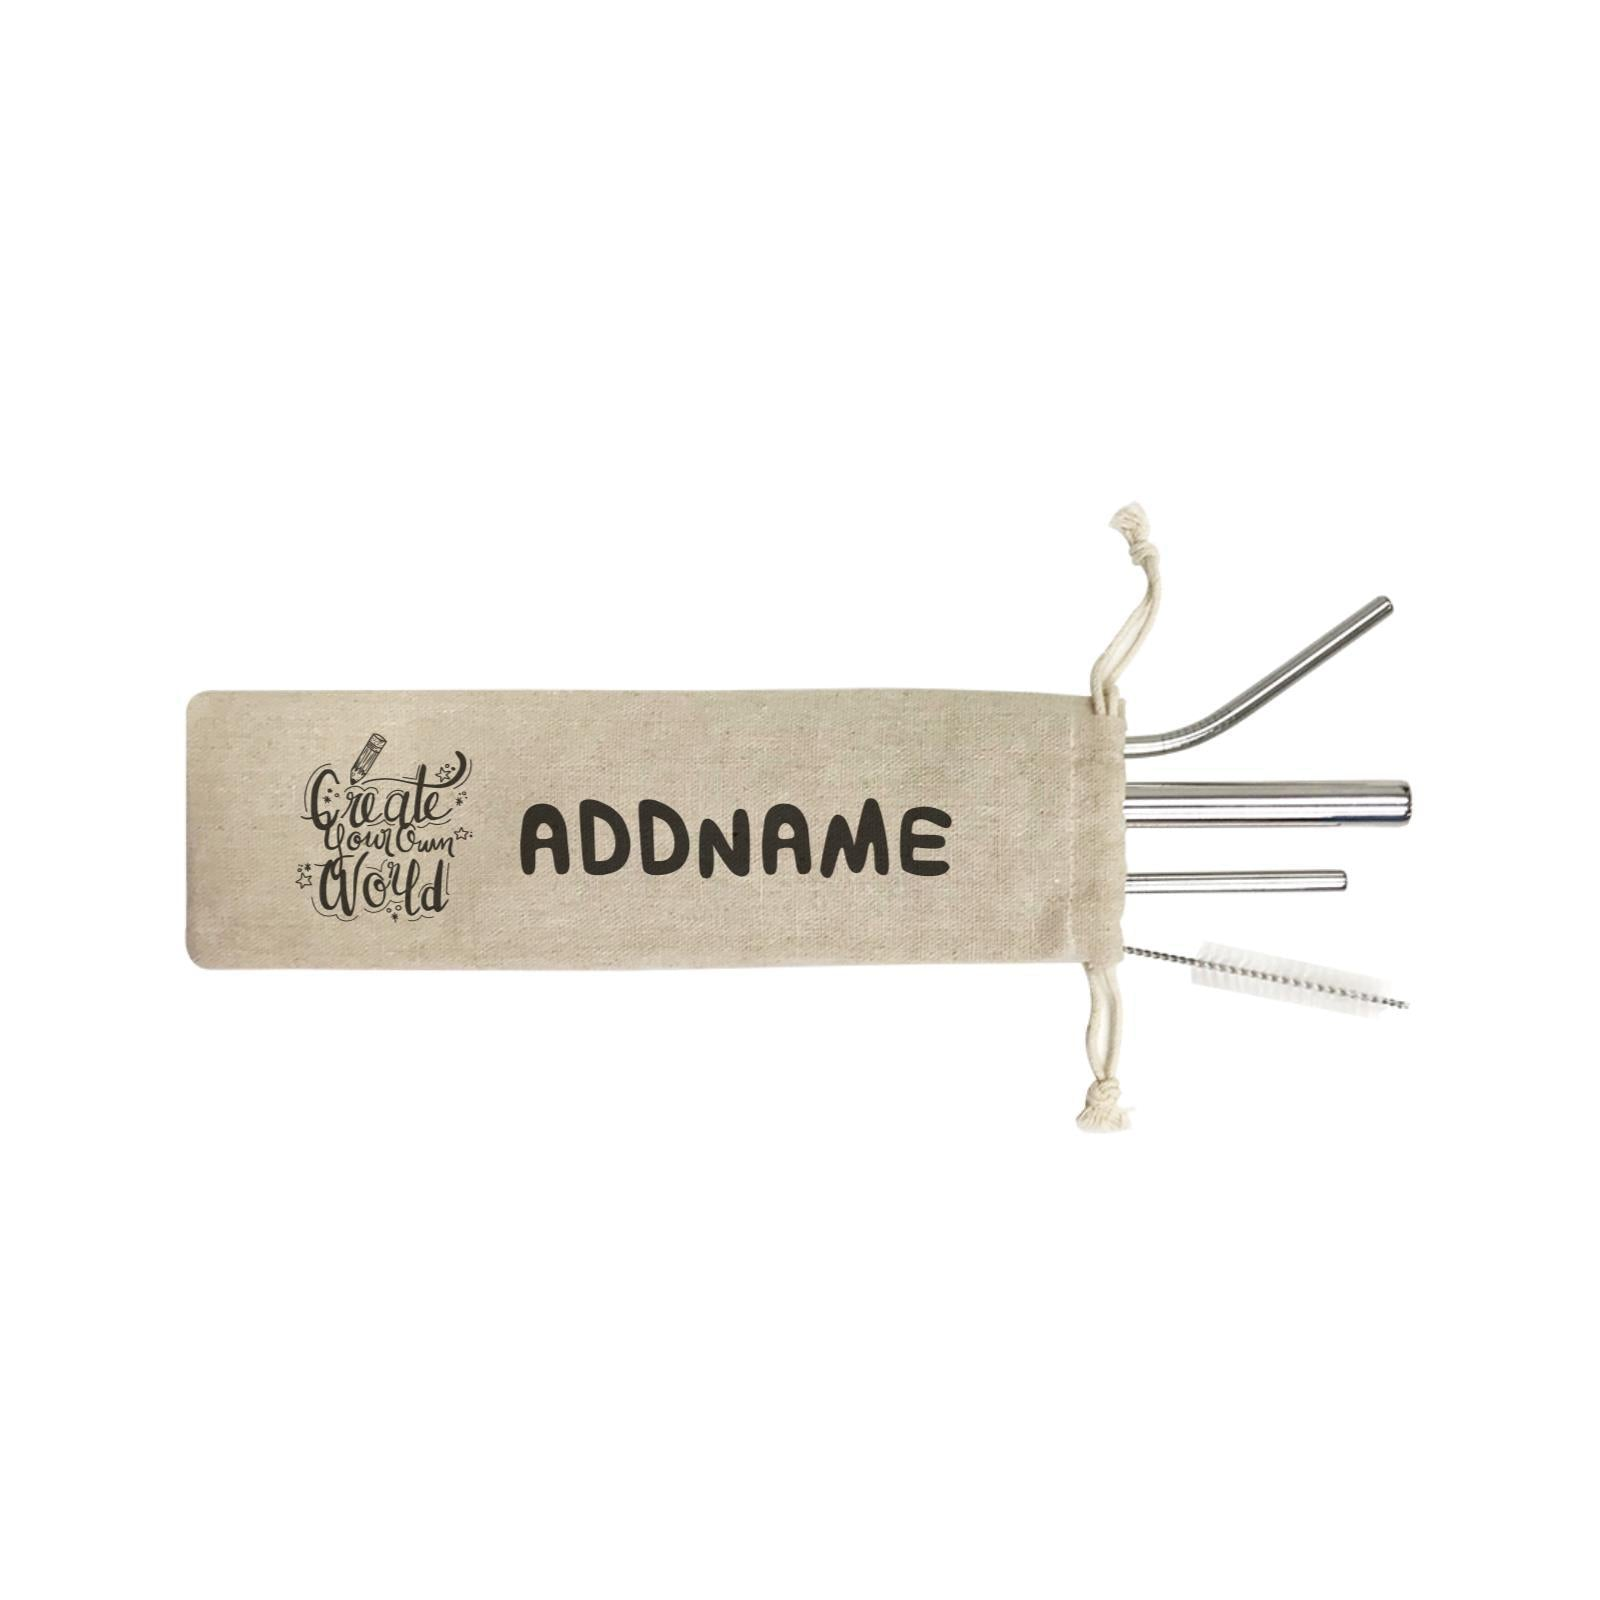 Children's Day Gift Series Create Your Own World Addname SB 4-in-1 Stainless Steel Straw Set In a Satchel